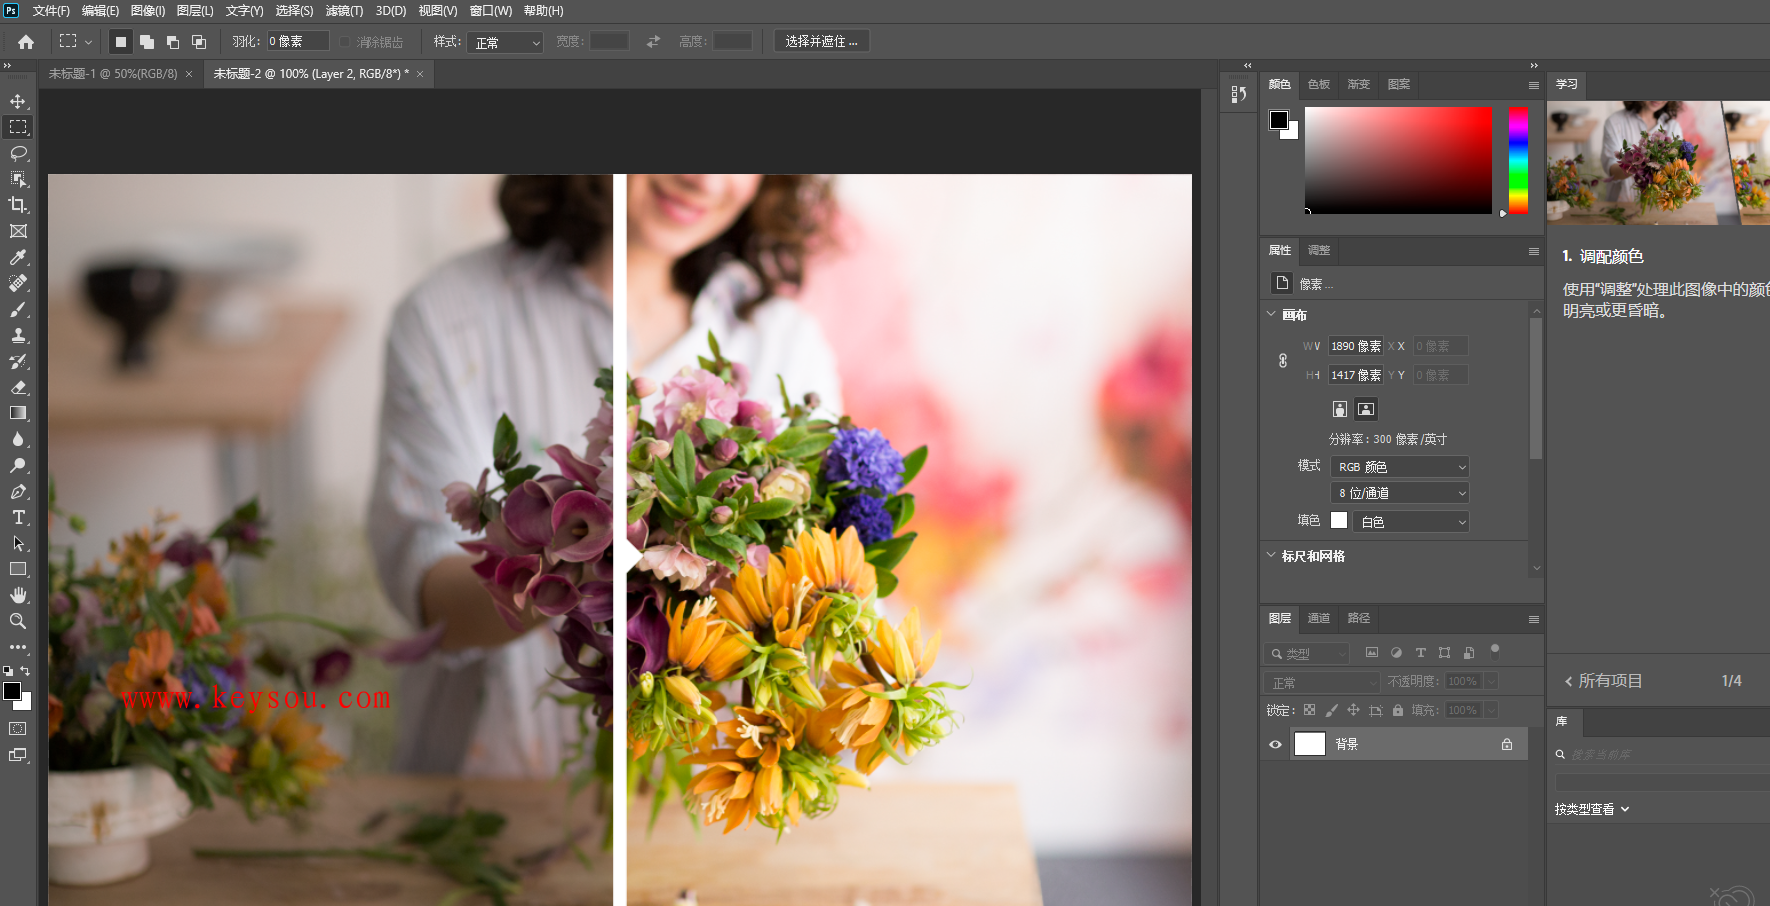 Win版 Adobe Photoshop 2018/2019/2020 通用安装教程